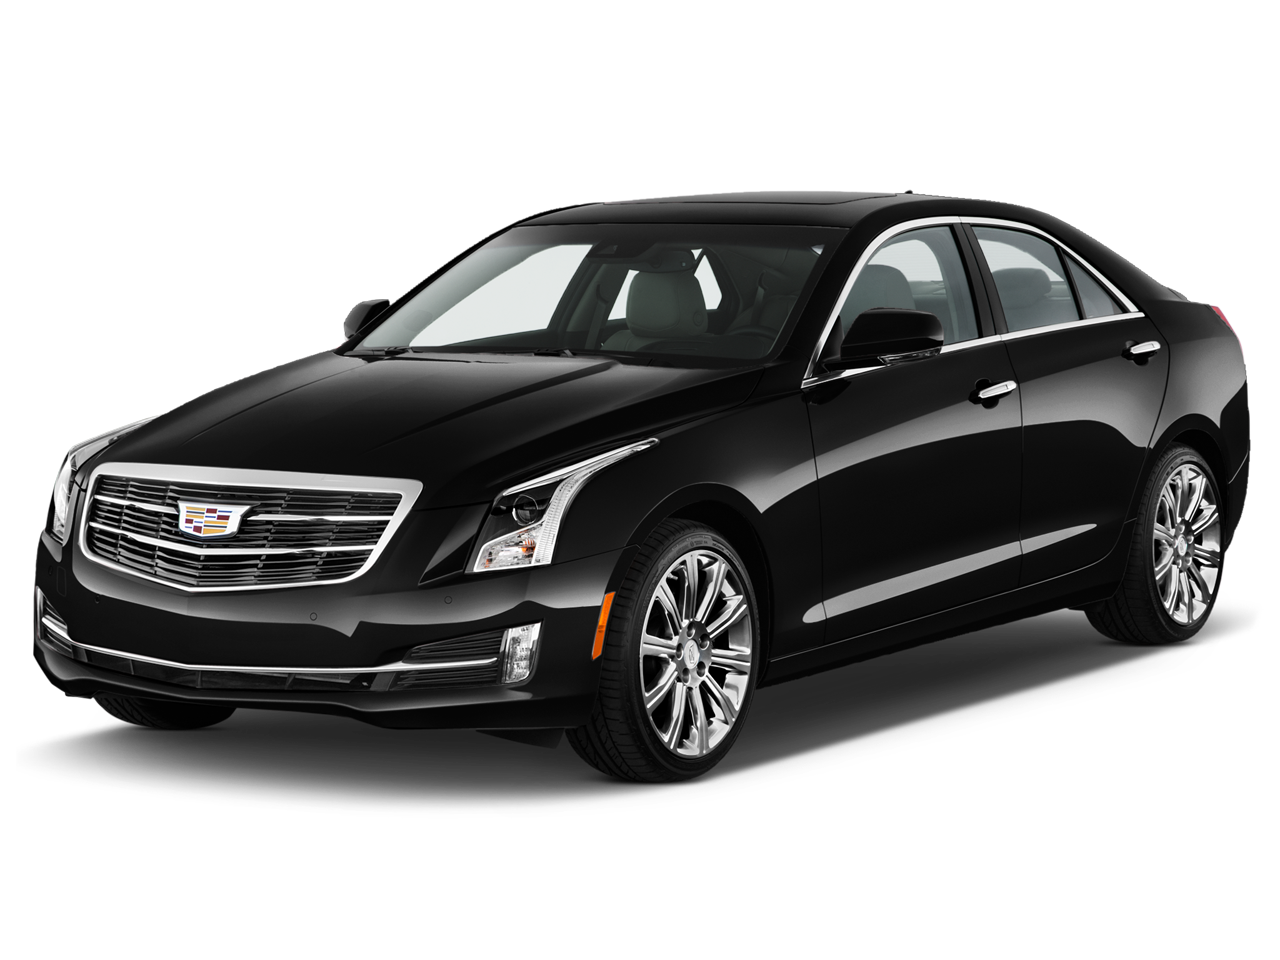 new 2017 cadillac ats 2 0l turbo luxury near highland mi. Black Bedroom Furniture Sets. Home Design Ideas